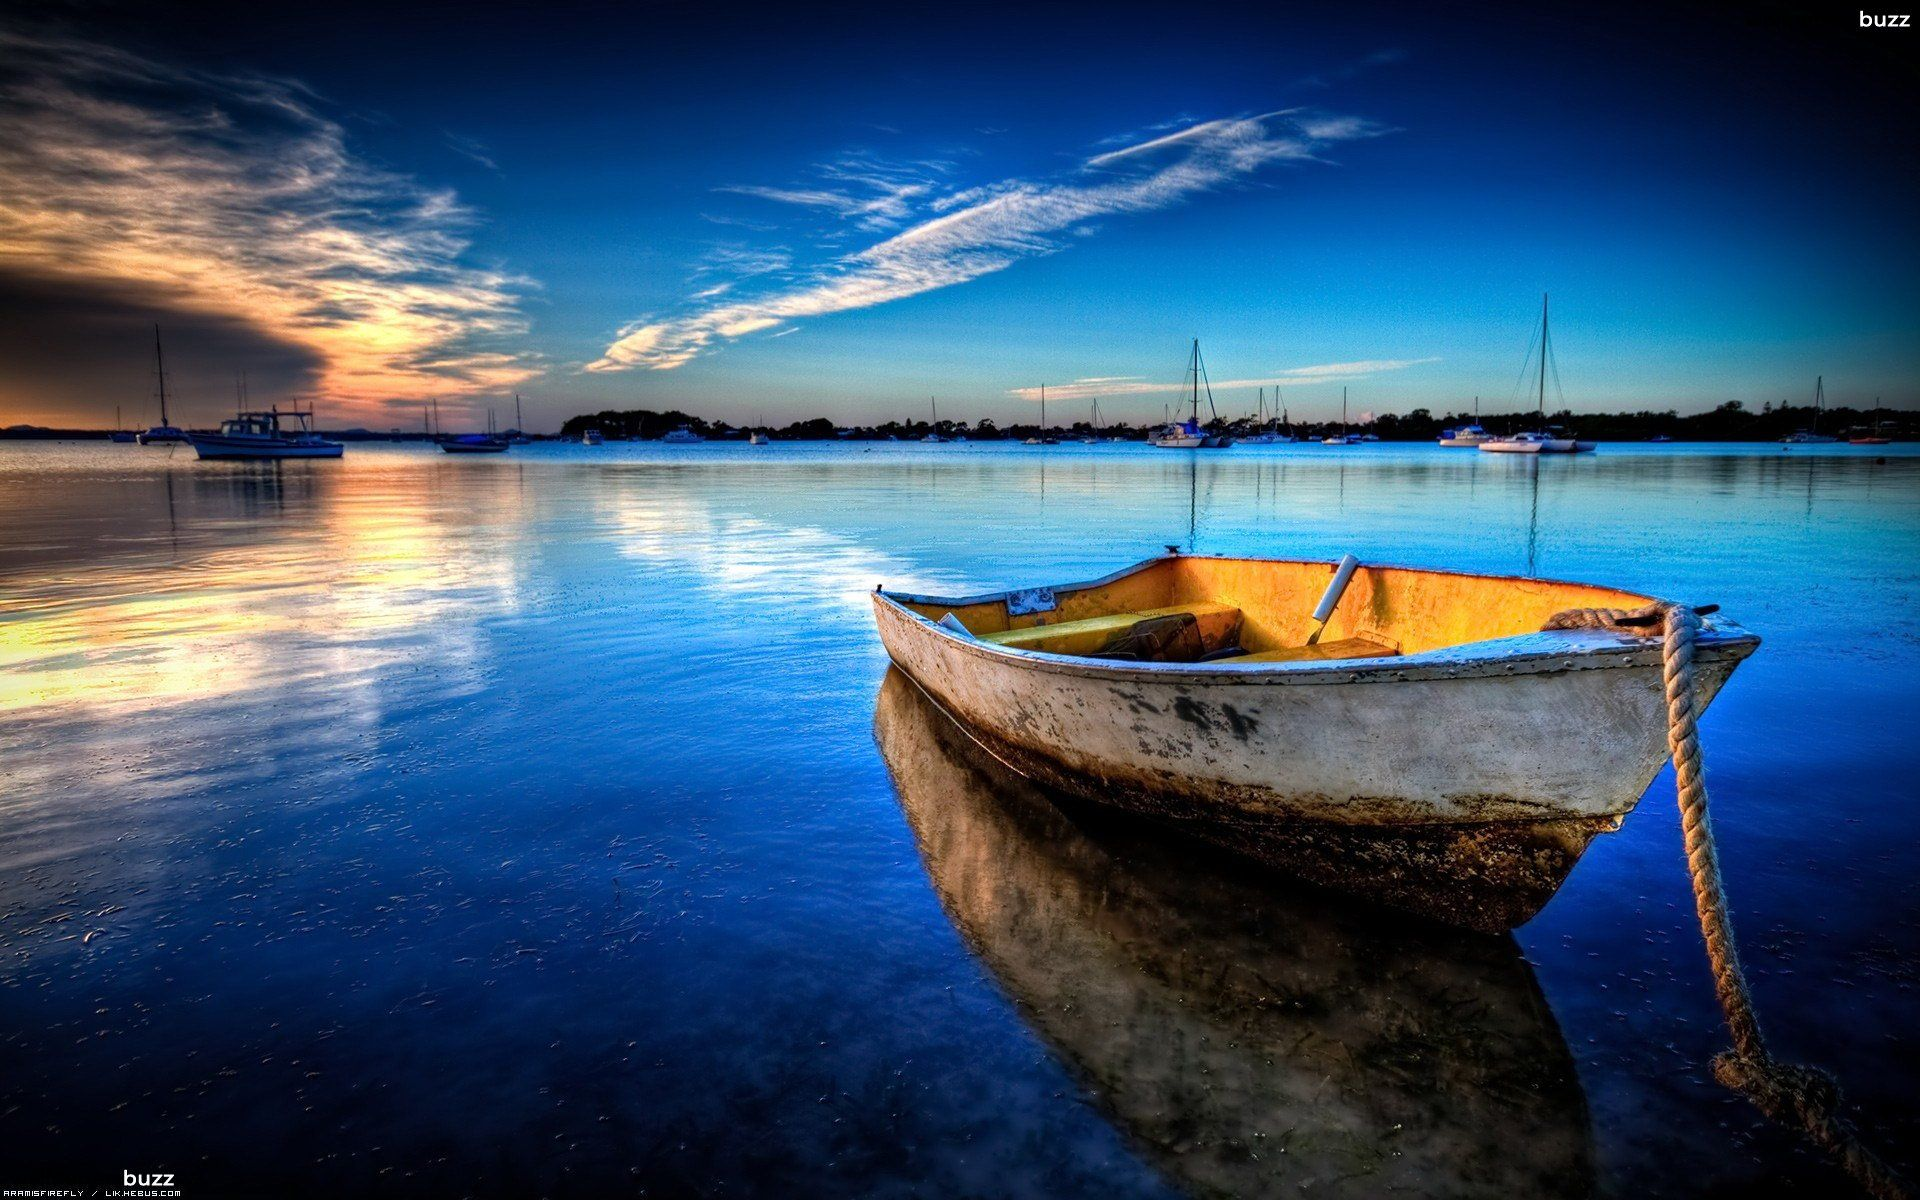 Sunset Wallpapers Hd Wallpapers Pulse Ocean Landscape Sunset Wallpaper Boat